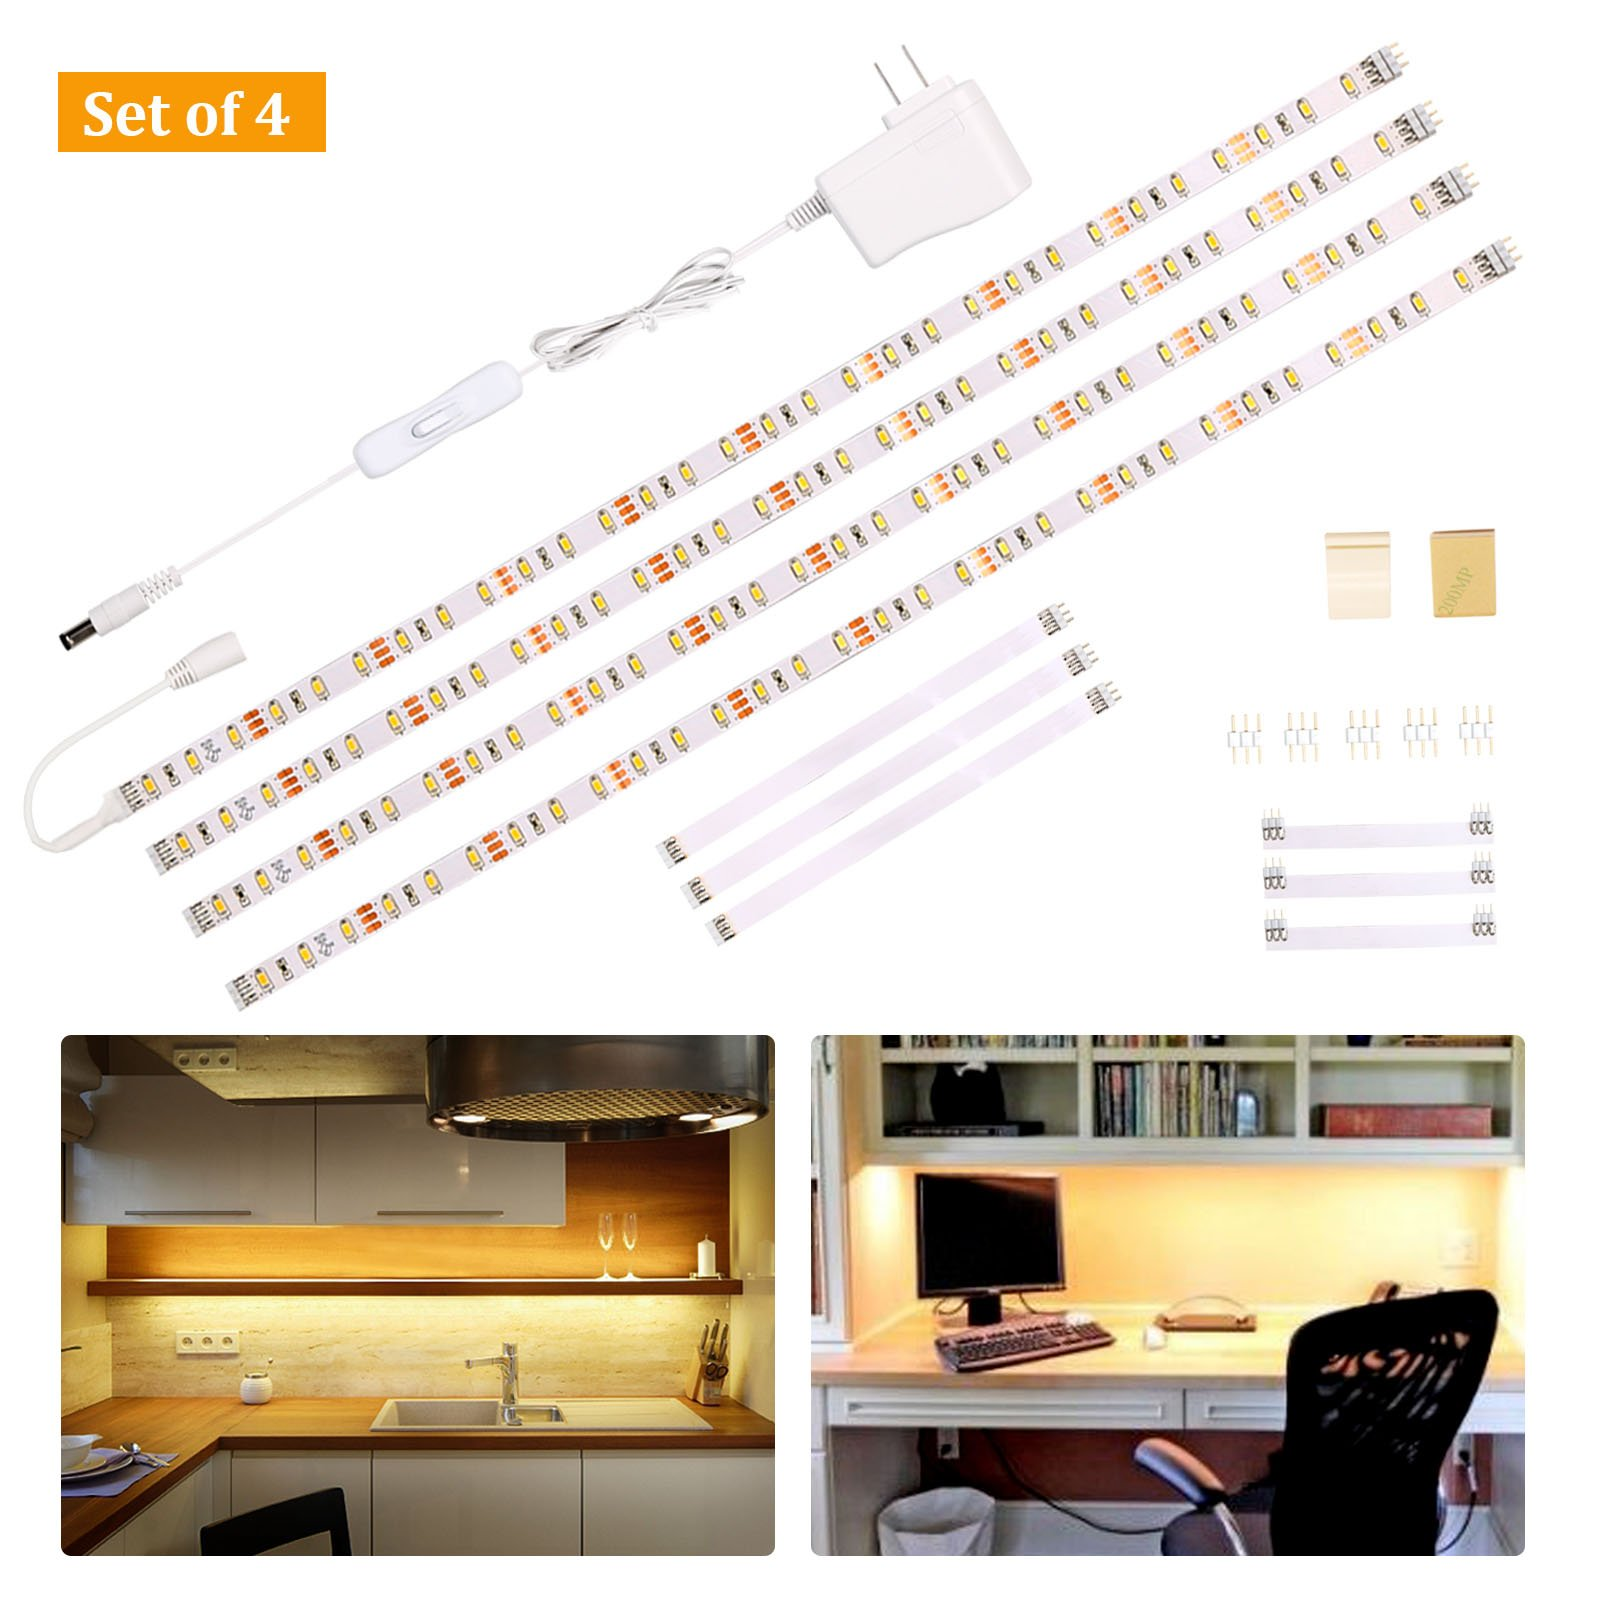 Wobane Under Cabinet Lighting Kit,Flexible LED Strip Lights Bar,Under Counter Lights for Kitchen,Cupboard,Desk,Monitor Back,Shelf,6.6 Feet Tape Light Set,UL Listed,120 LEDs,1100lm,2700K WarmWhite by WOBANE